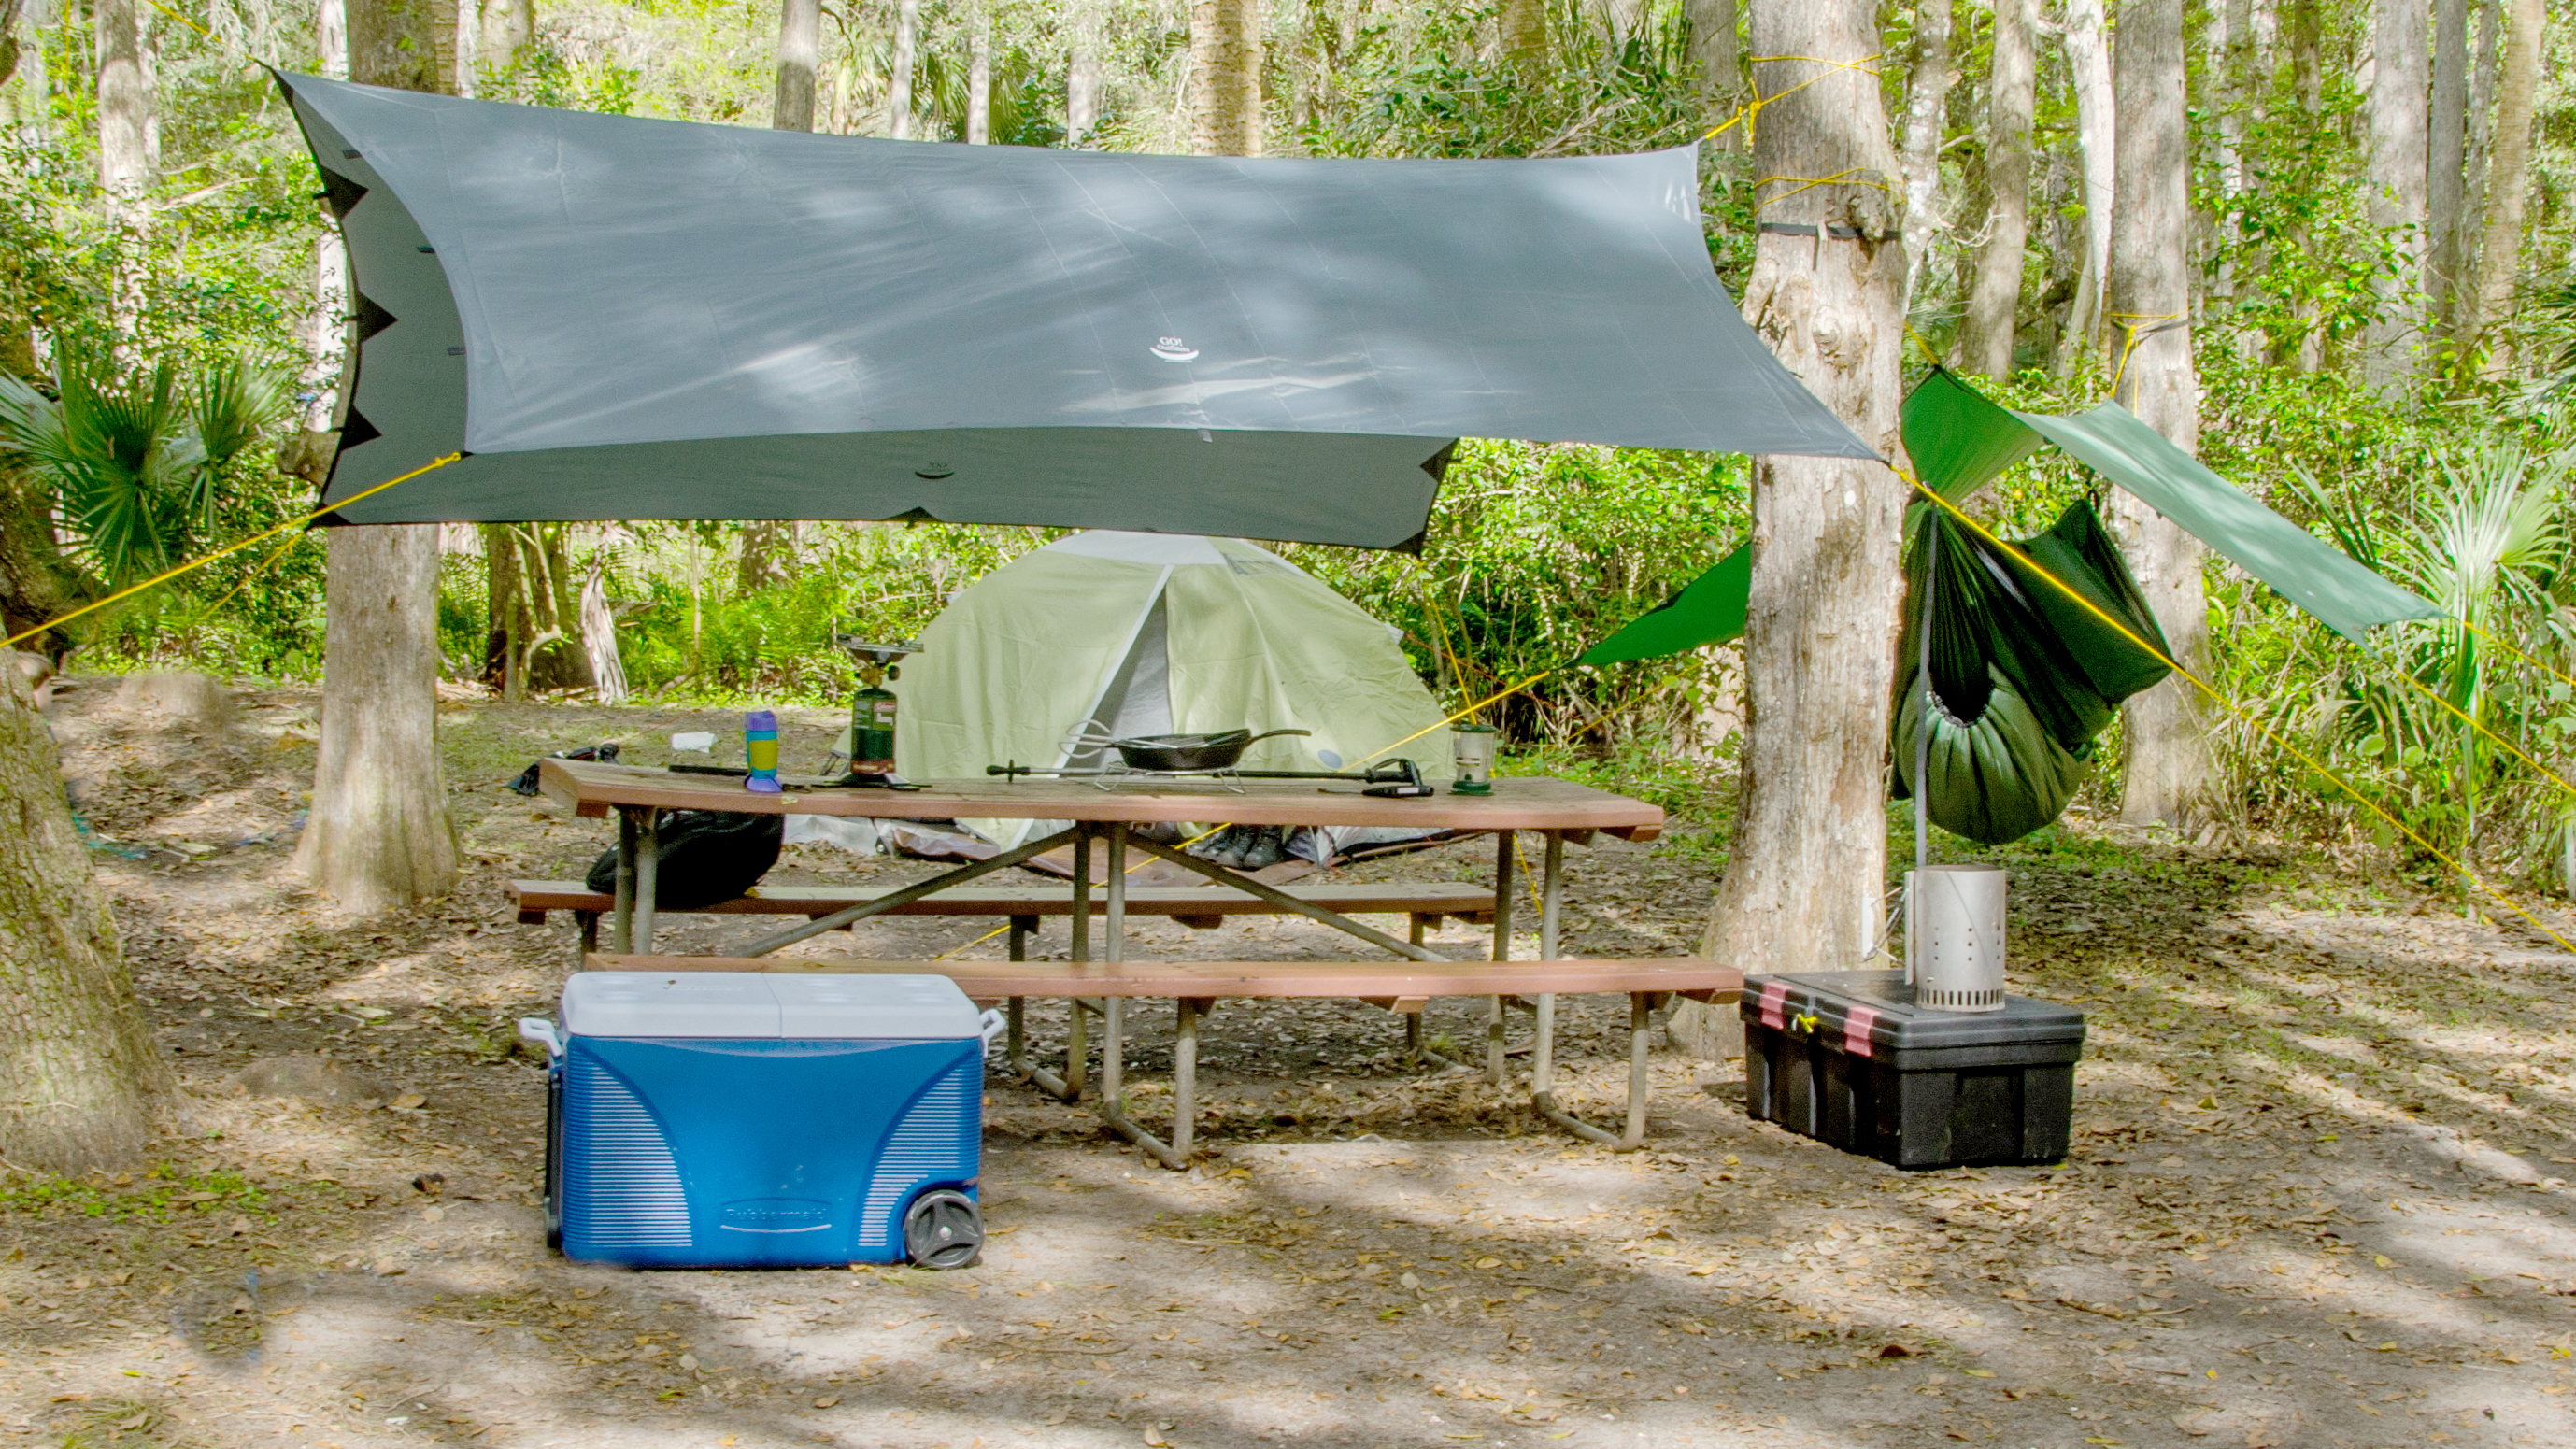 Video 16 X 9 2 tarps w- camping gear-2